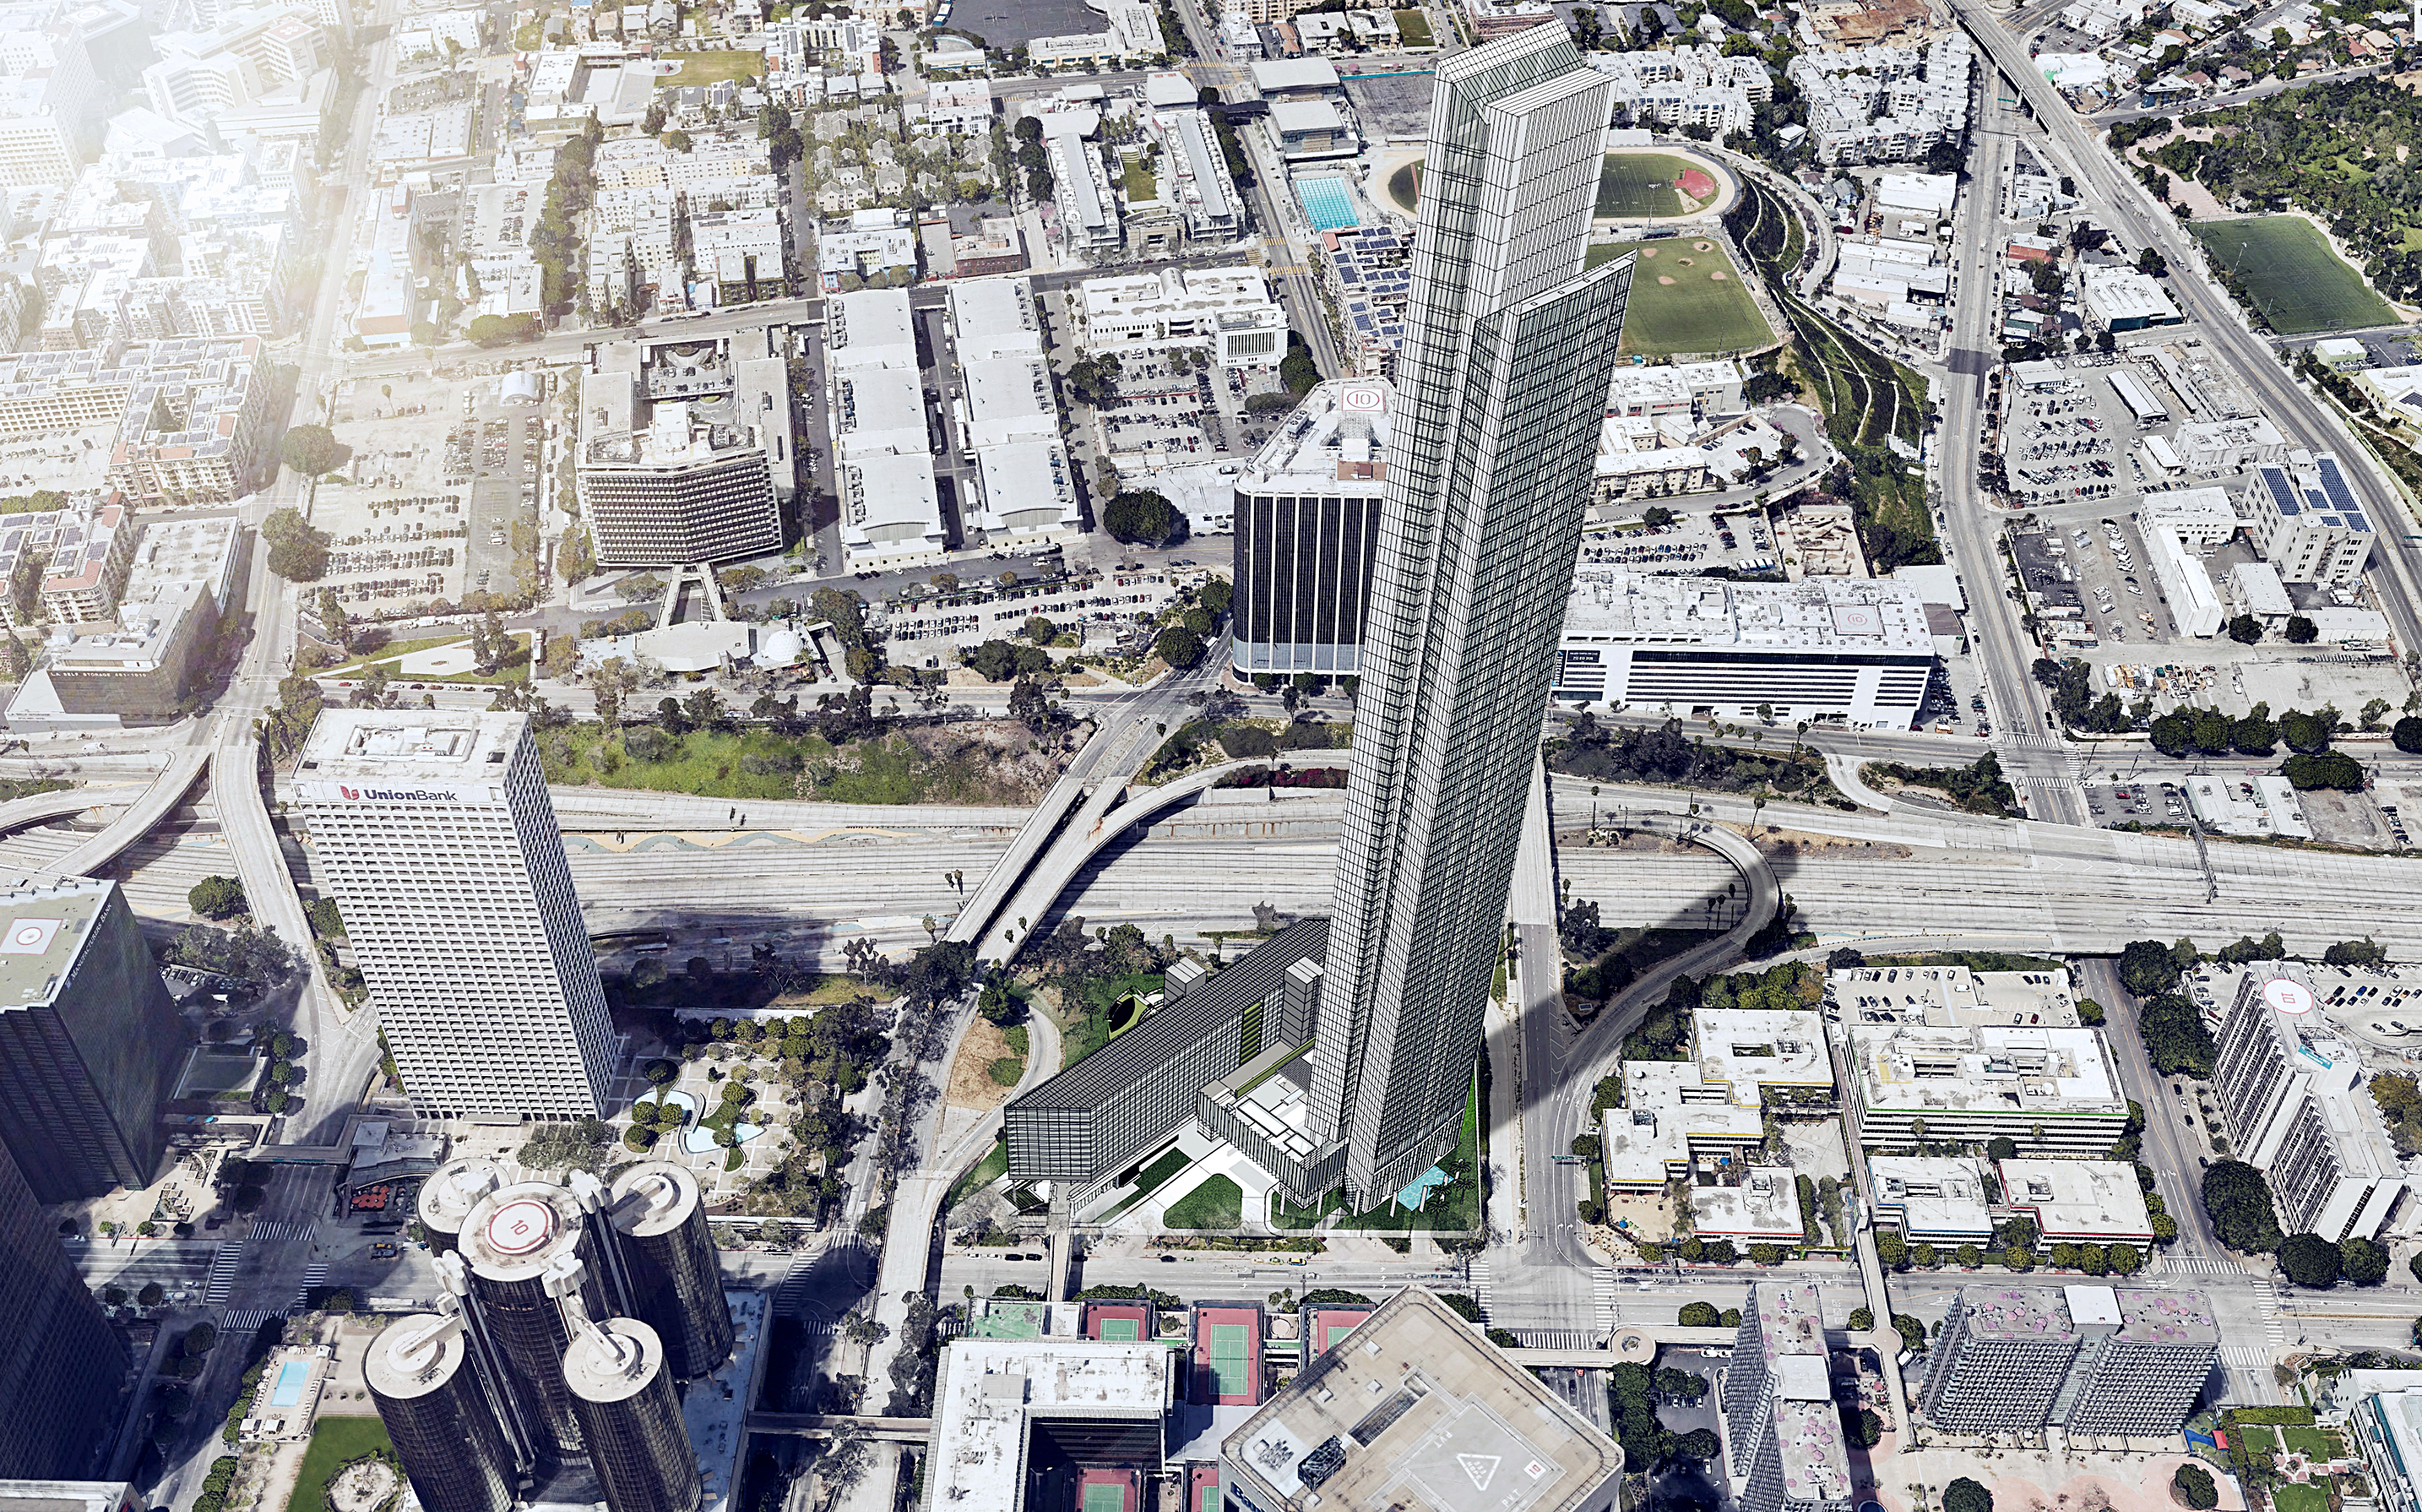 Plans to build LA's new tallest tower on Bunker Hill moving forward